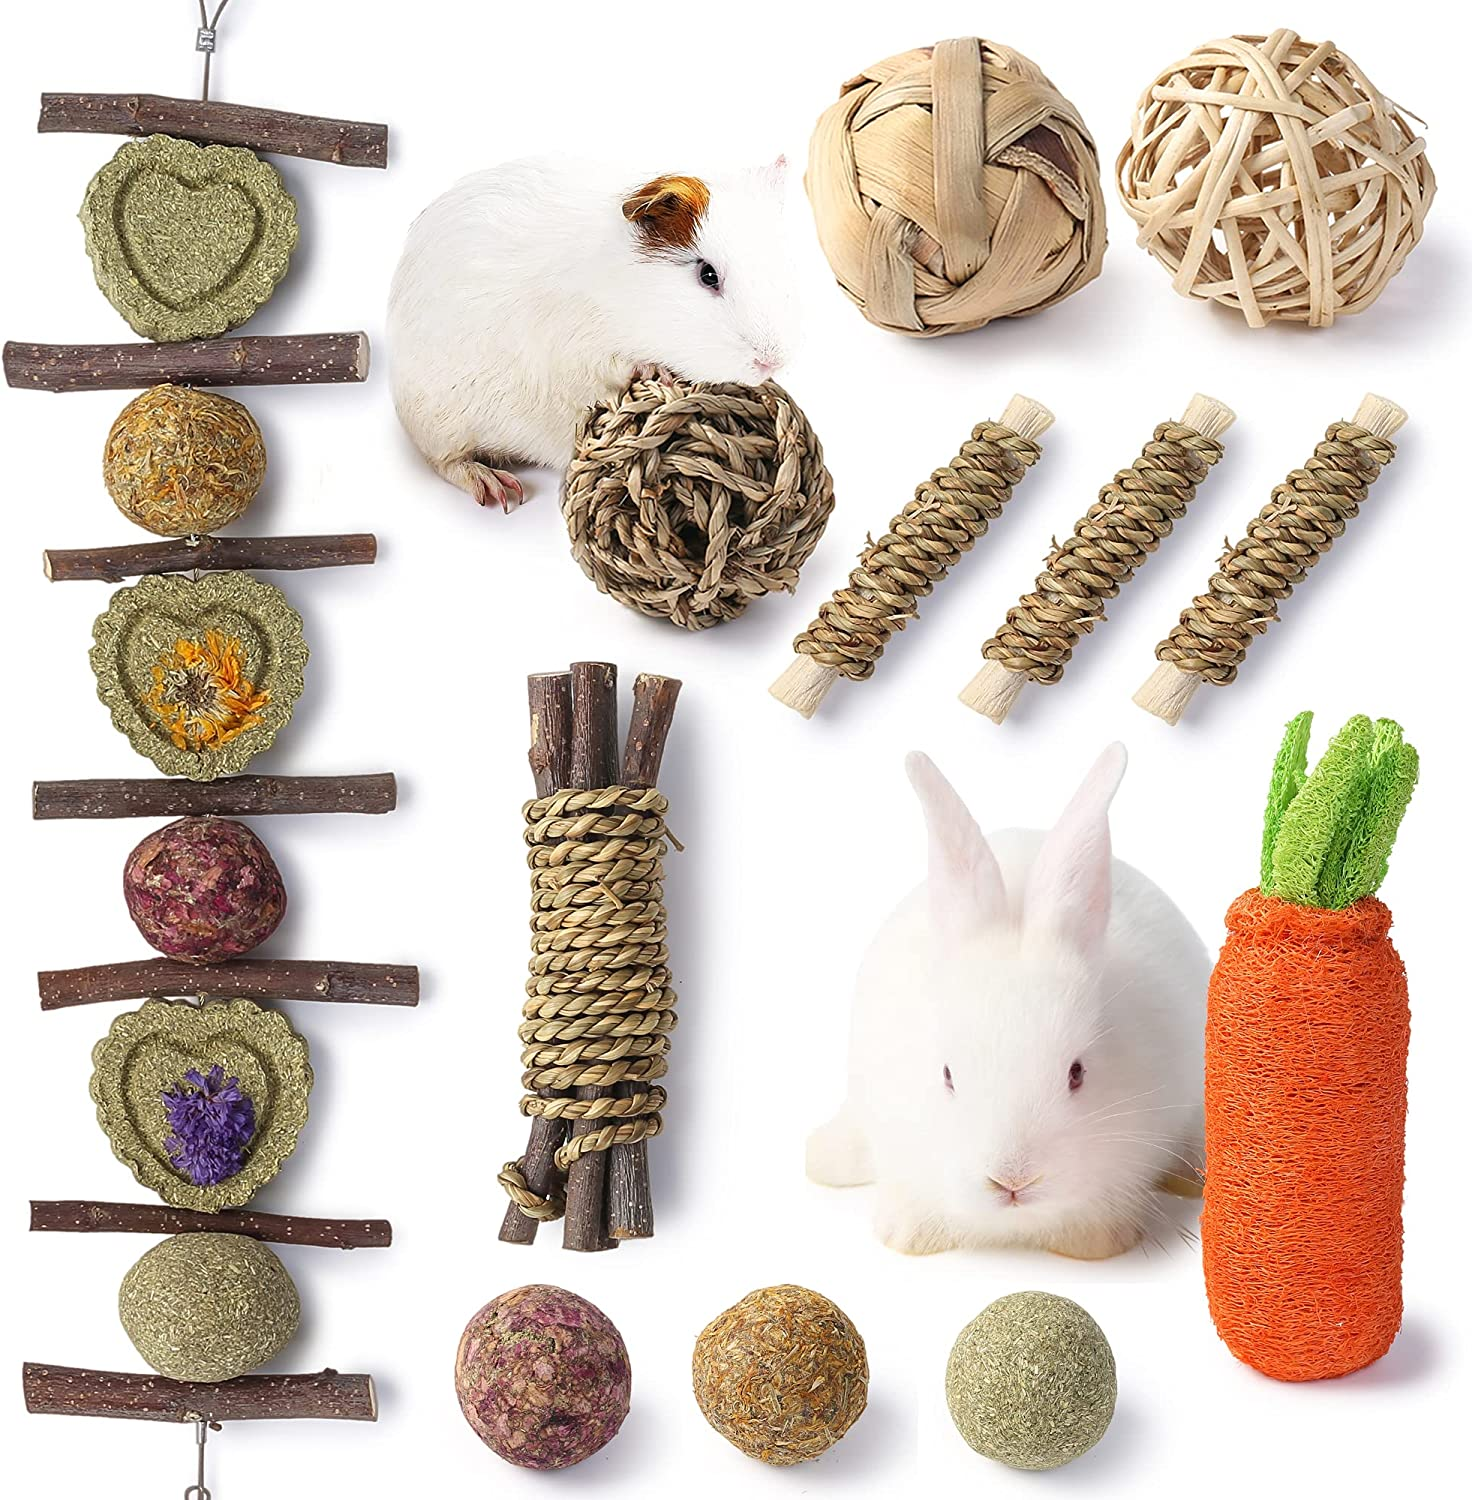 JanYoo Rabbit Chew Toys for Teeth Natural Guinea Wooden Pig Acce Louisville-Jefferson County Sale price Mall